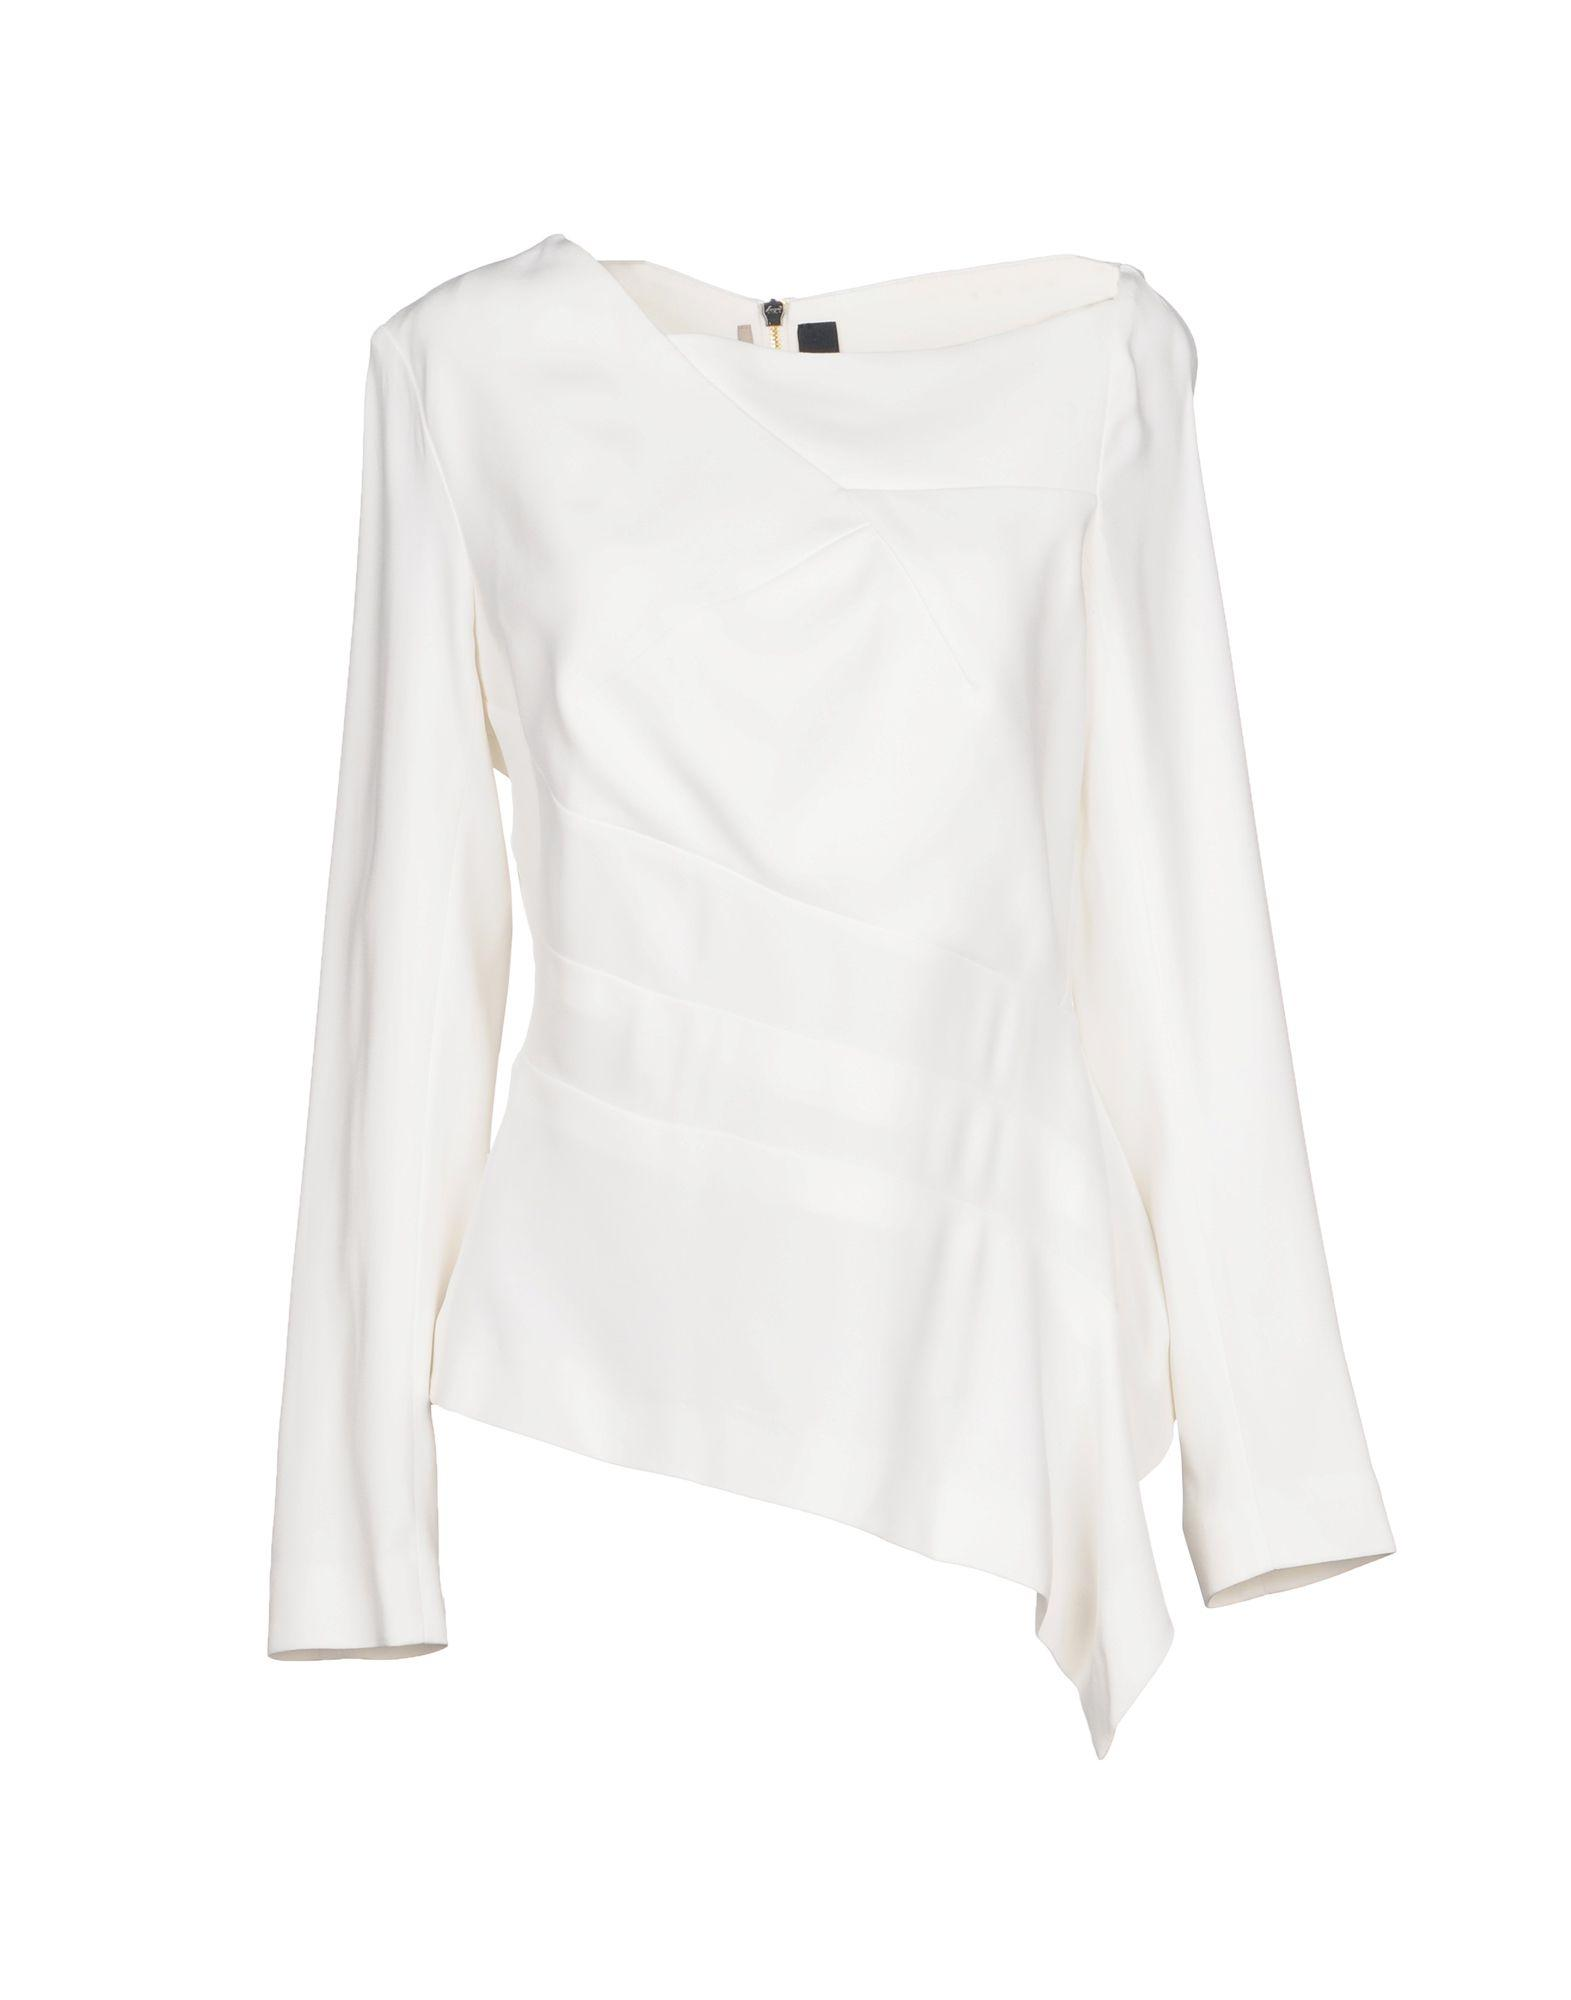 Roland Mouret Blouses In White